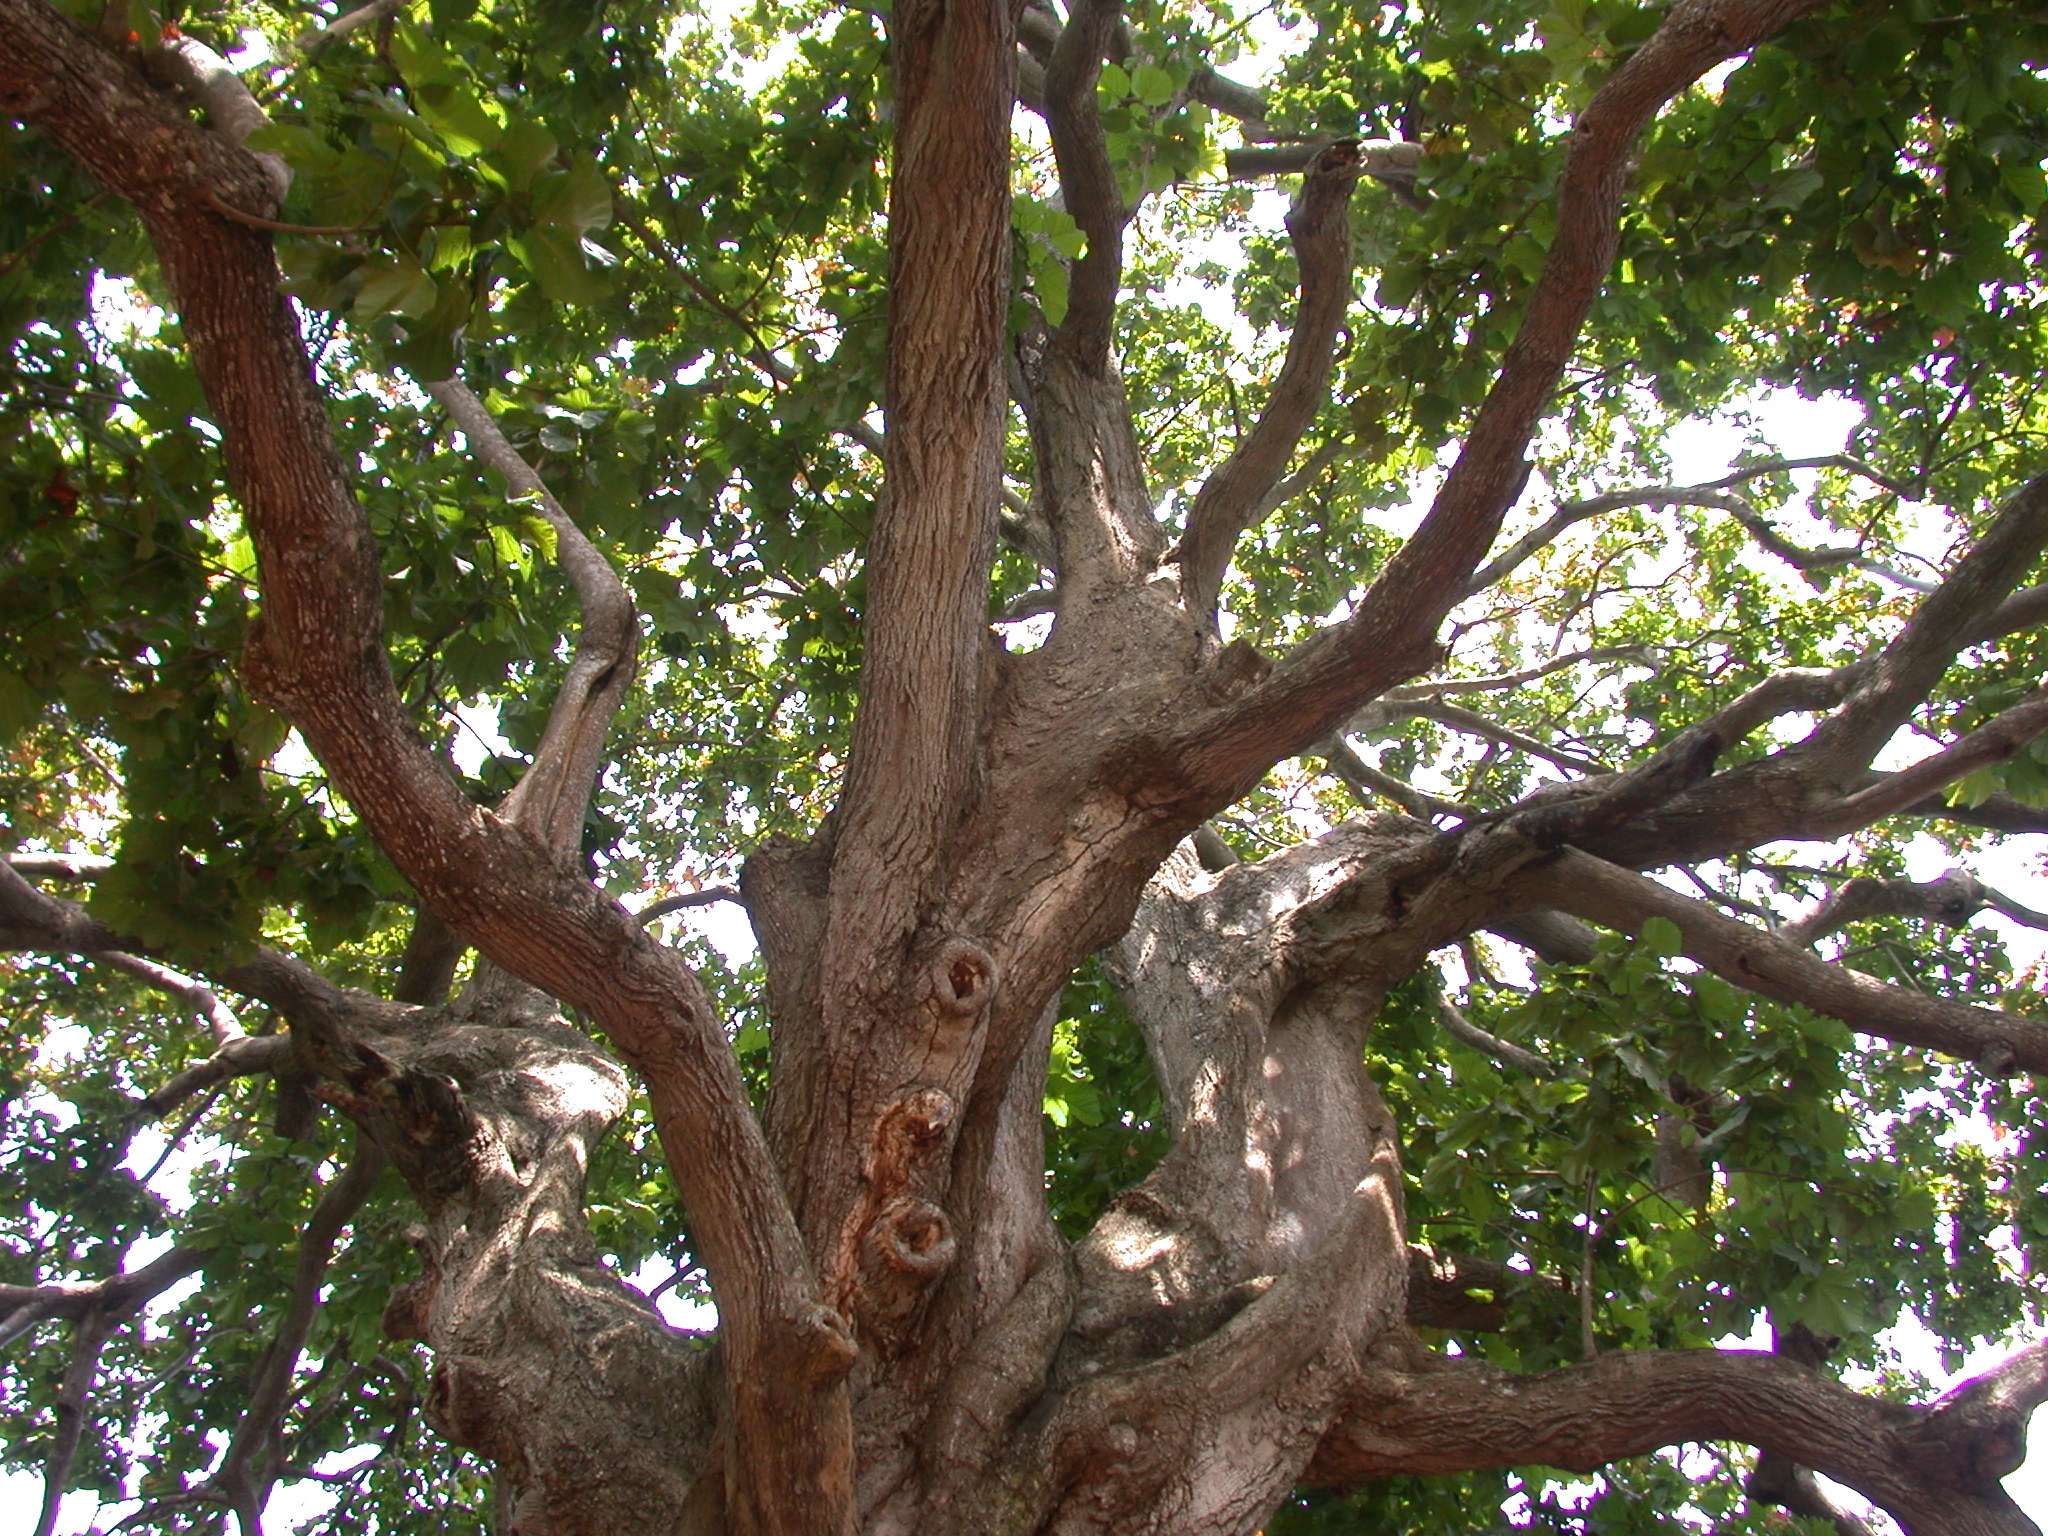 Large Gnarly Tree, Kpasse Sacred Forest, Ouidah, Benin